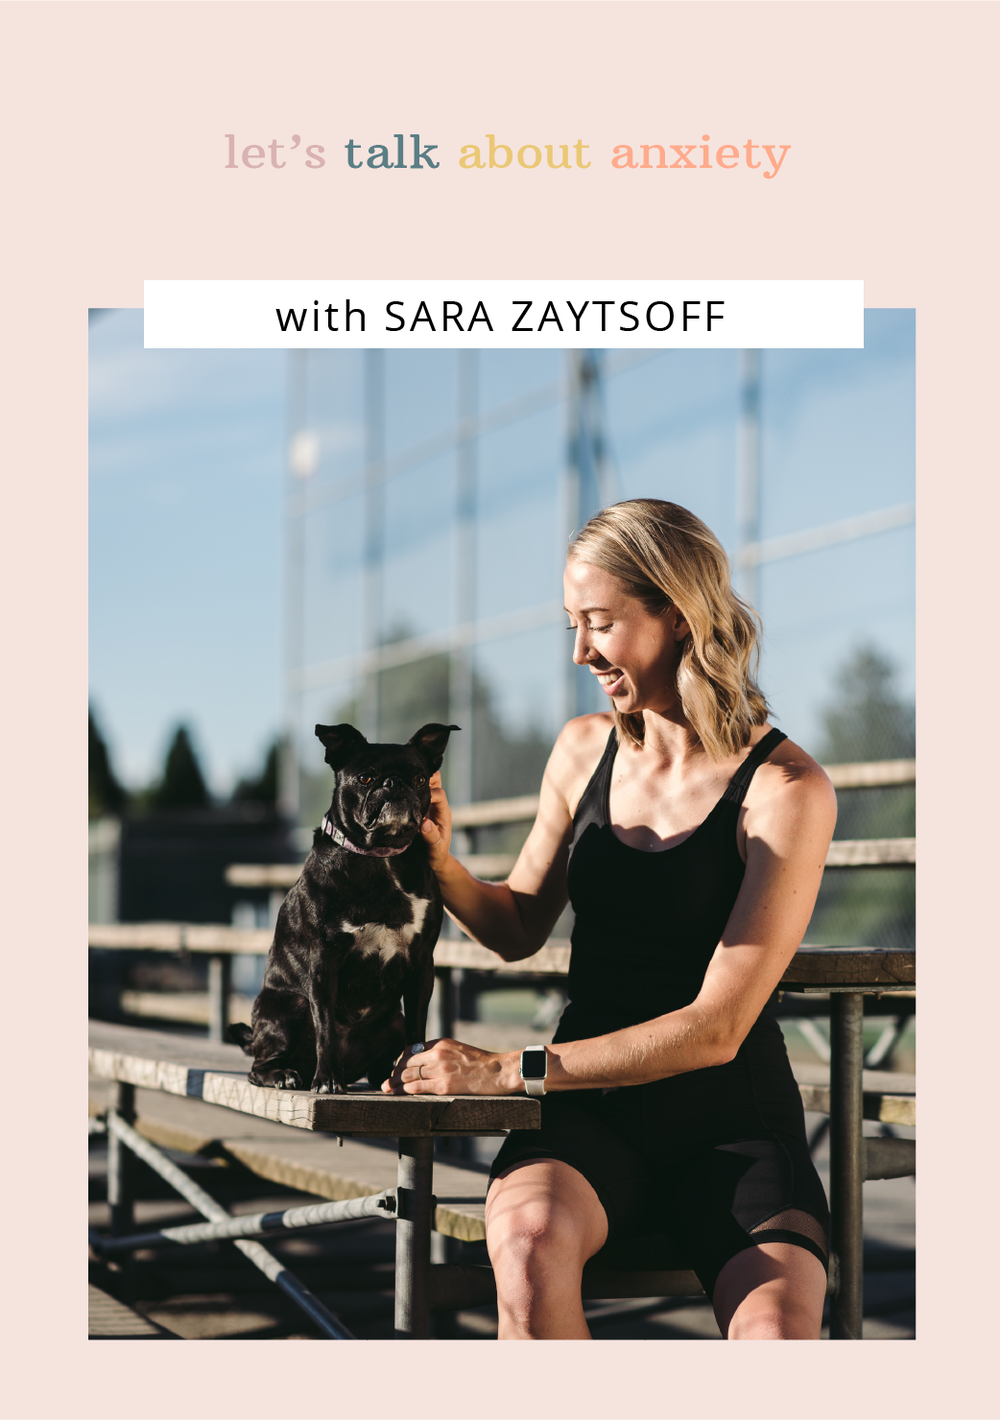 Let's Talk About Anxiety with Sara Zaytsoff; an interview series talking about anxiety, working with anxiety and how we deal with it